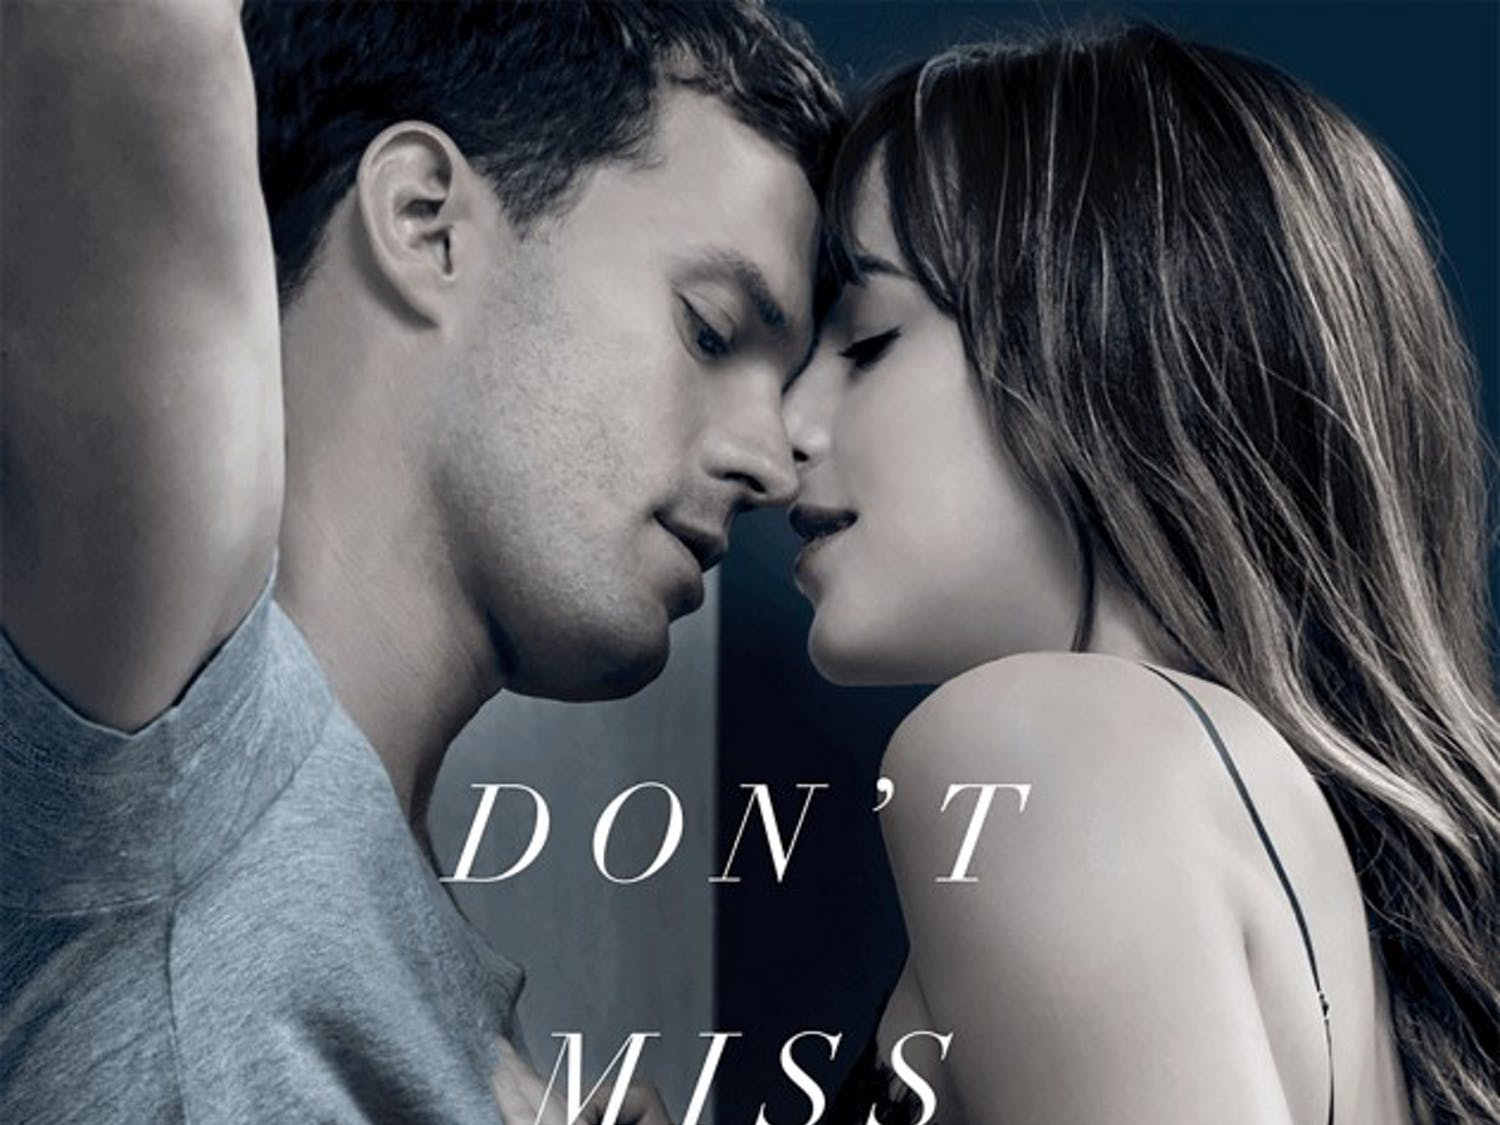 """February is known as a """"dump month"""" in the film industry. The """"Fifty Shades"""" trilogy reaches its climax with the release of """"Fifty Shades Freed"""" on Feb. 9."""